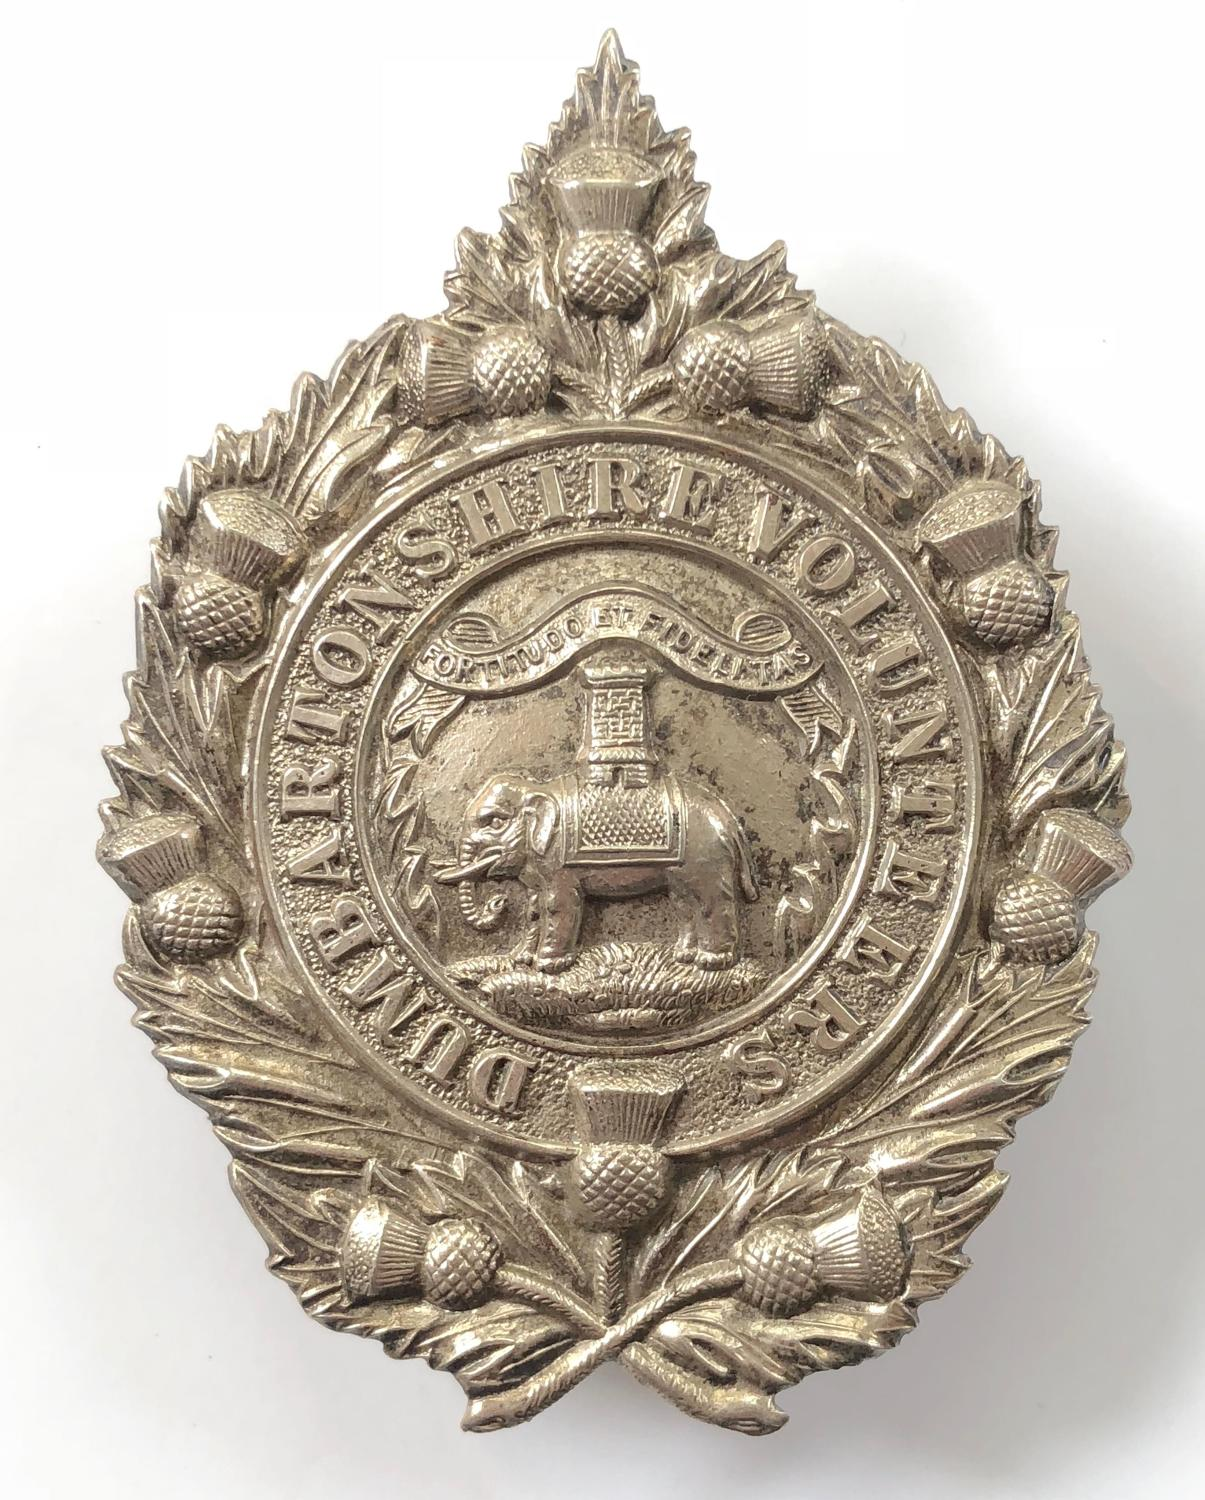 1st Dumbartonshire Volunteer Rifle Corps NCO's glengarry badge